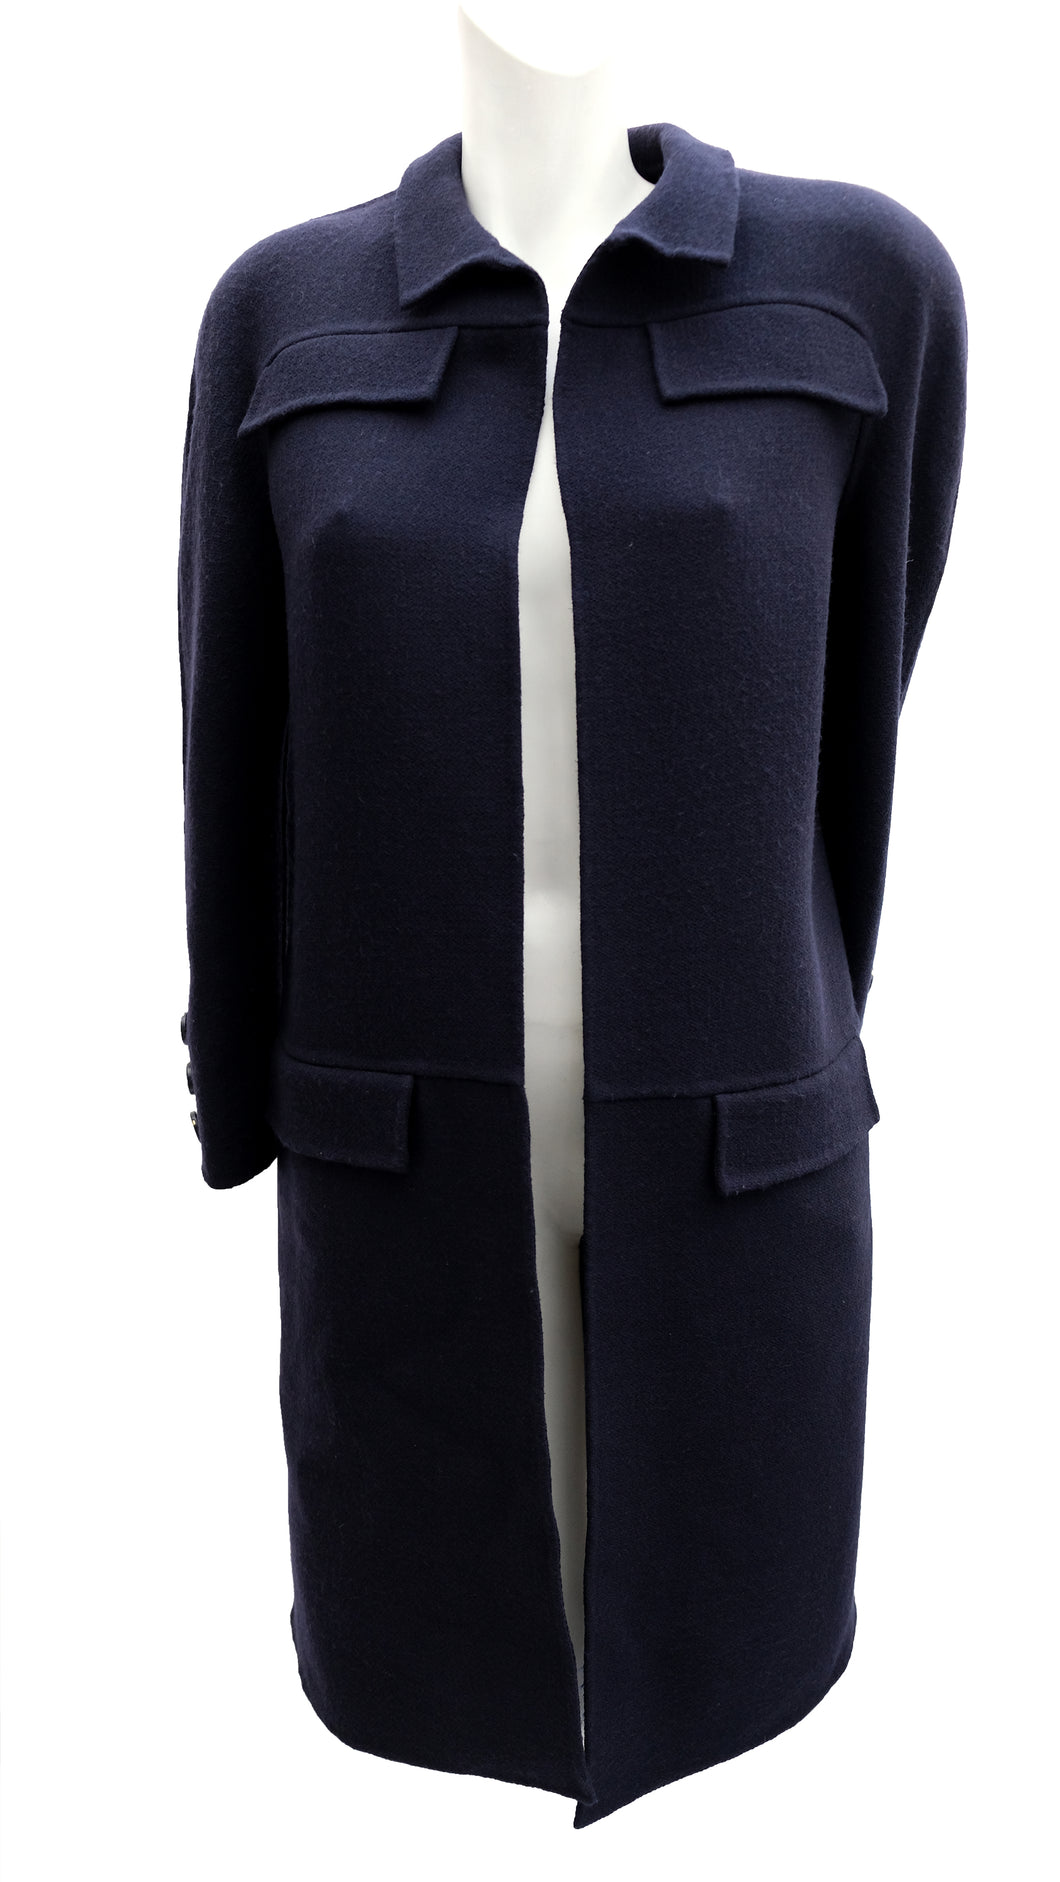 Valentino Boutique Minimalist Coat in Navy Crepe, UK10-12